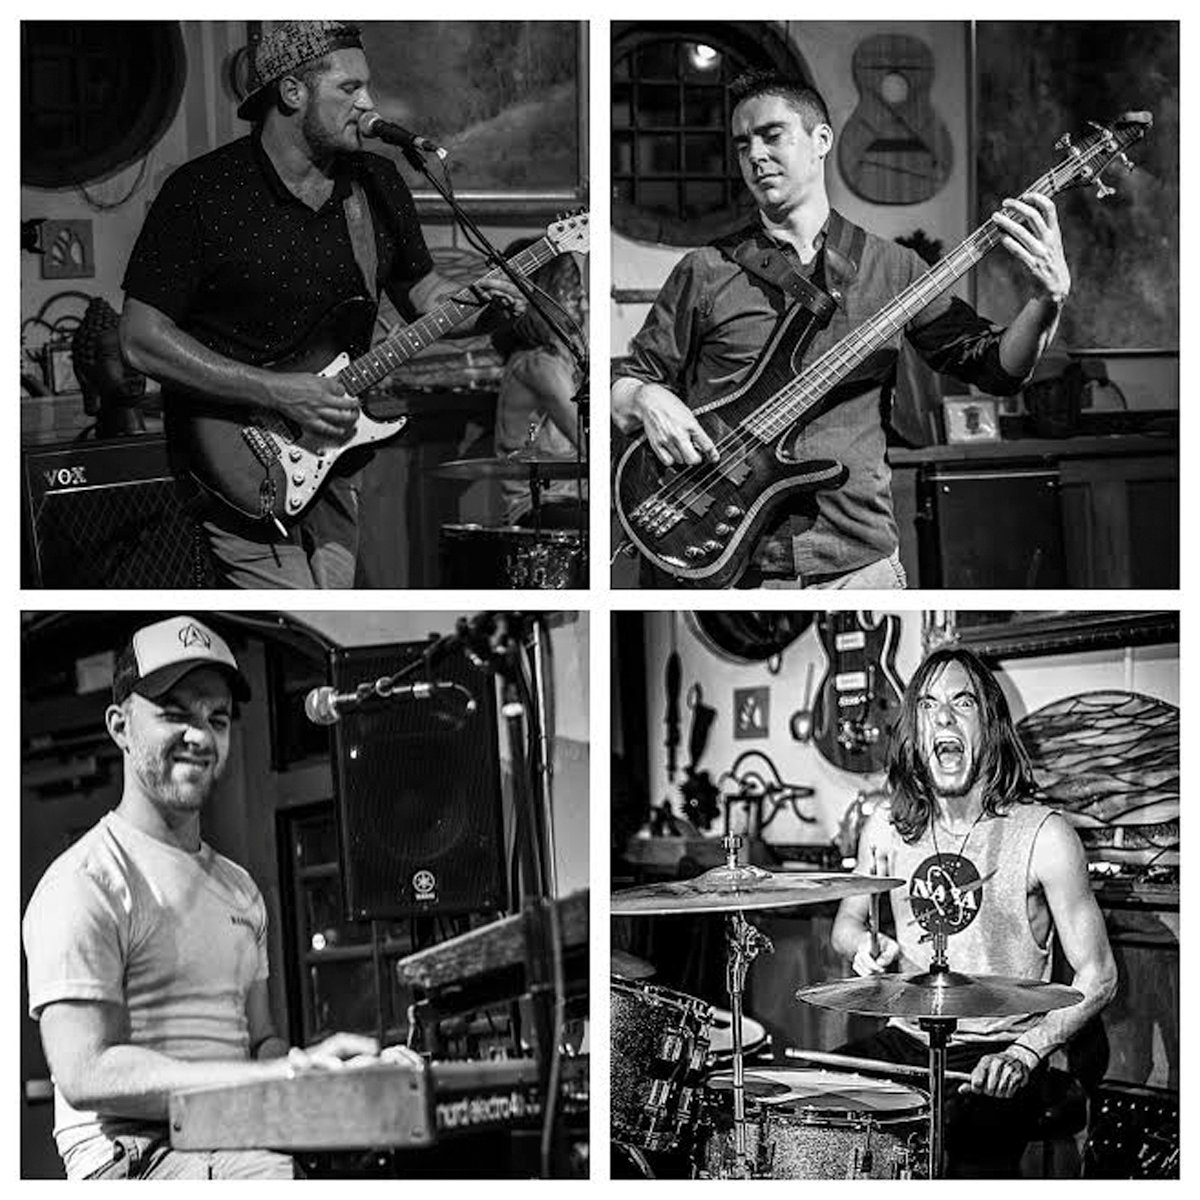 FUNKY FOUR: After starting out as a trio, Johnston's Tai Chi Funk Squad is now a quartet consisting of guitarist and vocalist Jake Anderson, drummer Dylan Butler, bassist Rob Anthony and keyboardist Thomas White.